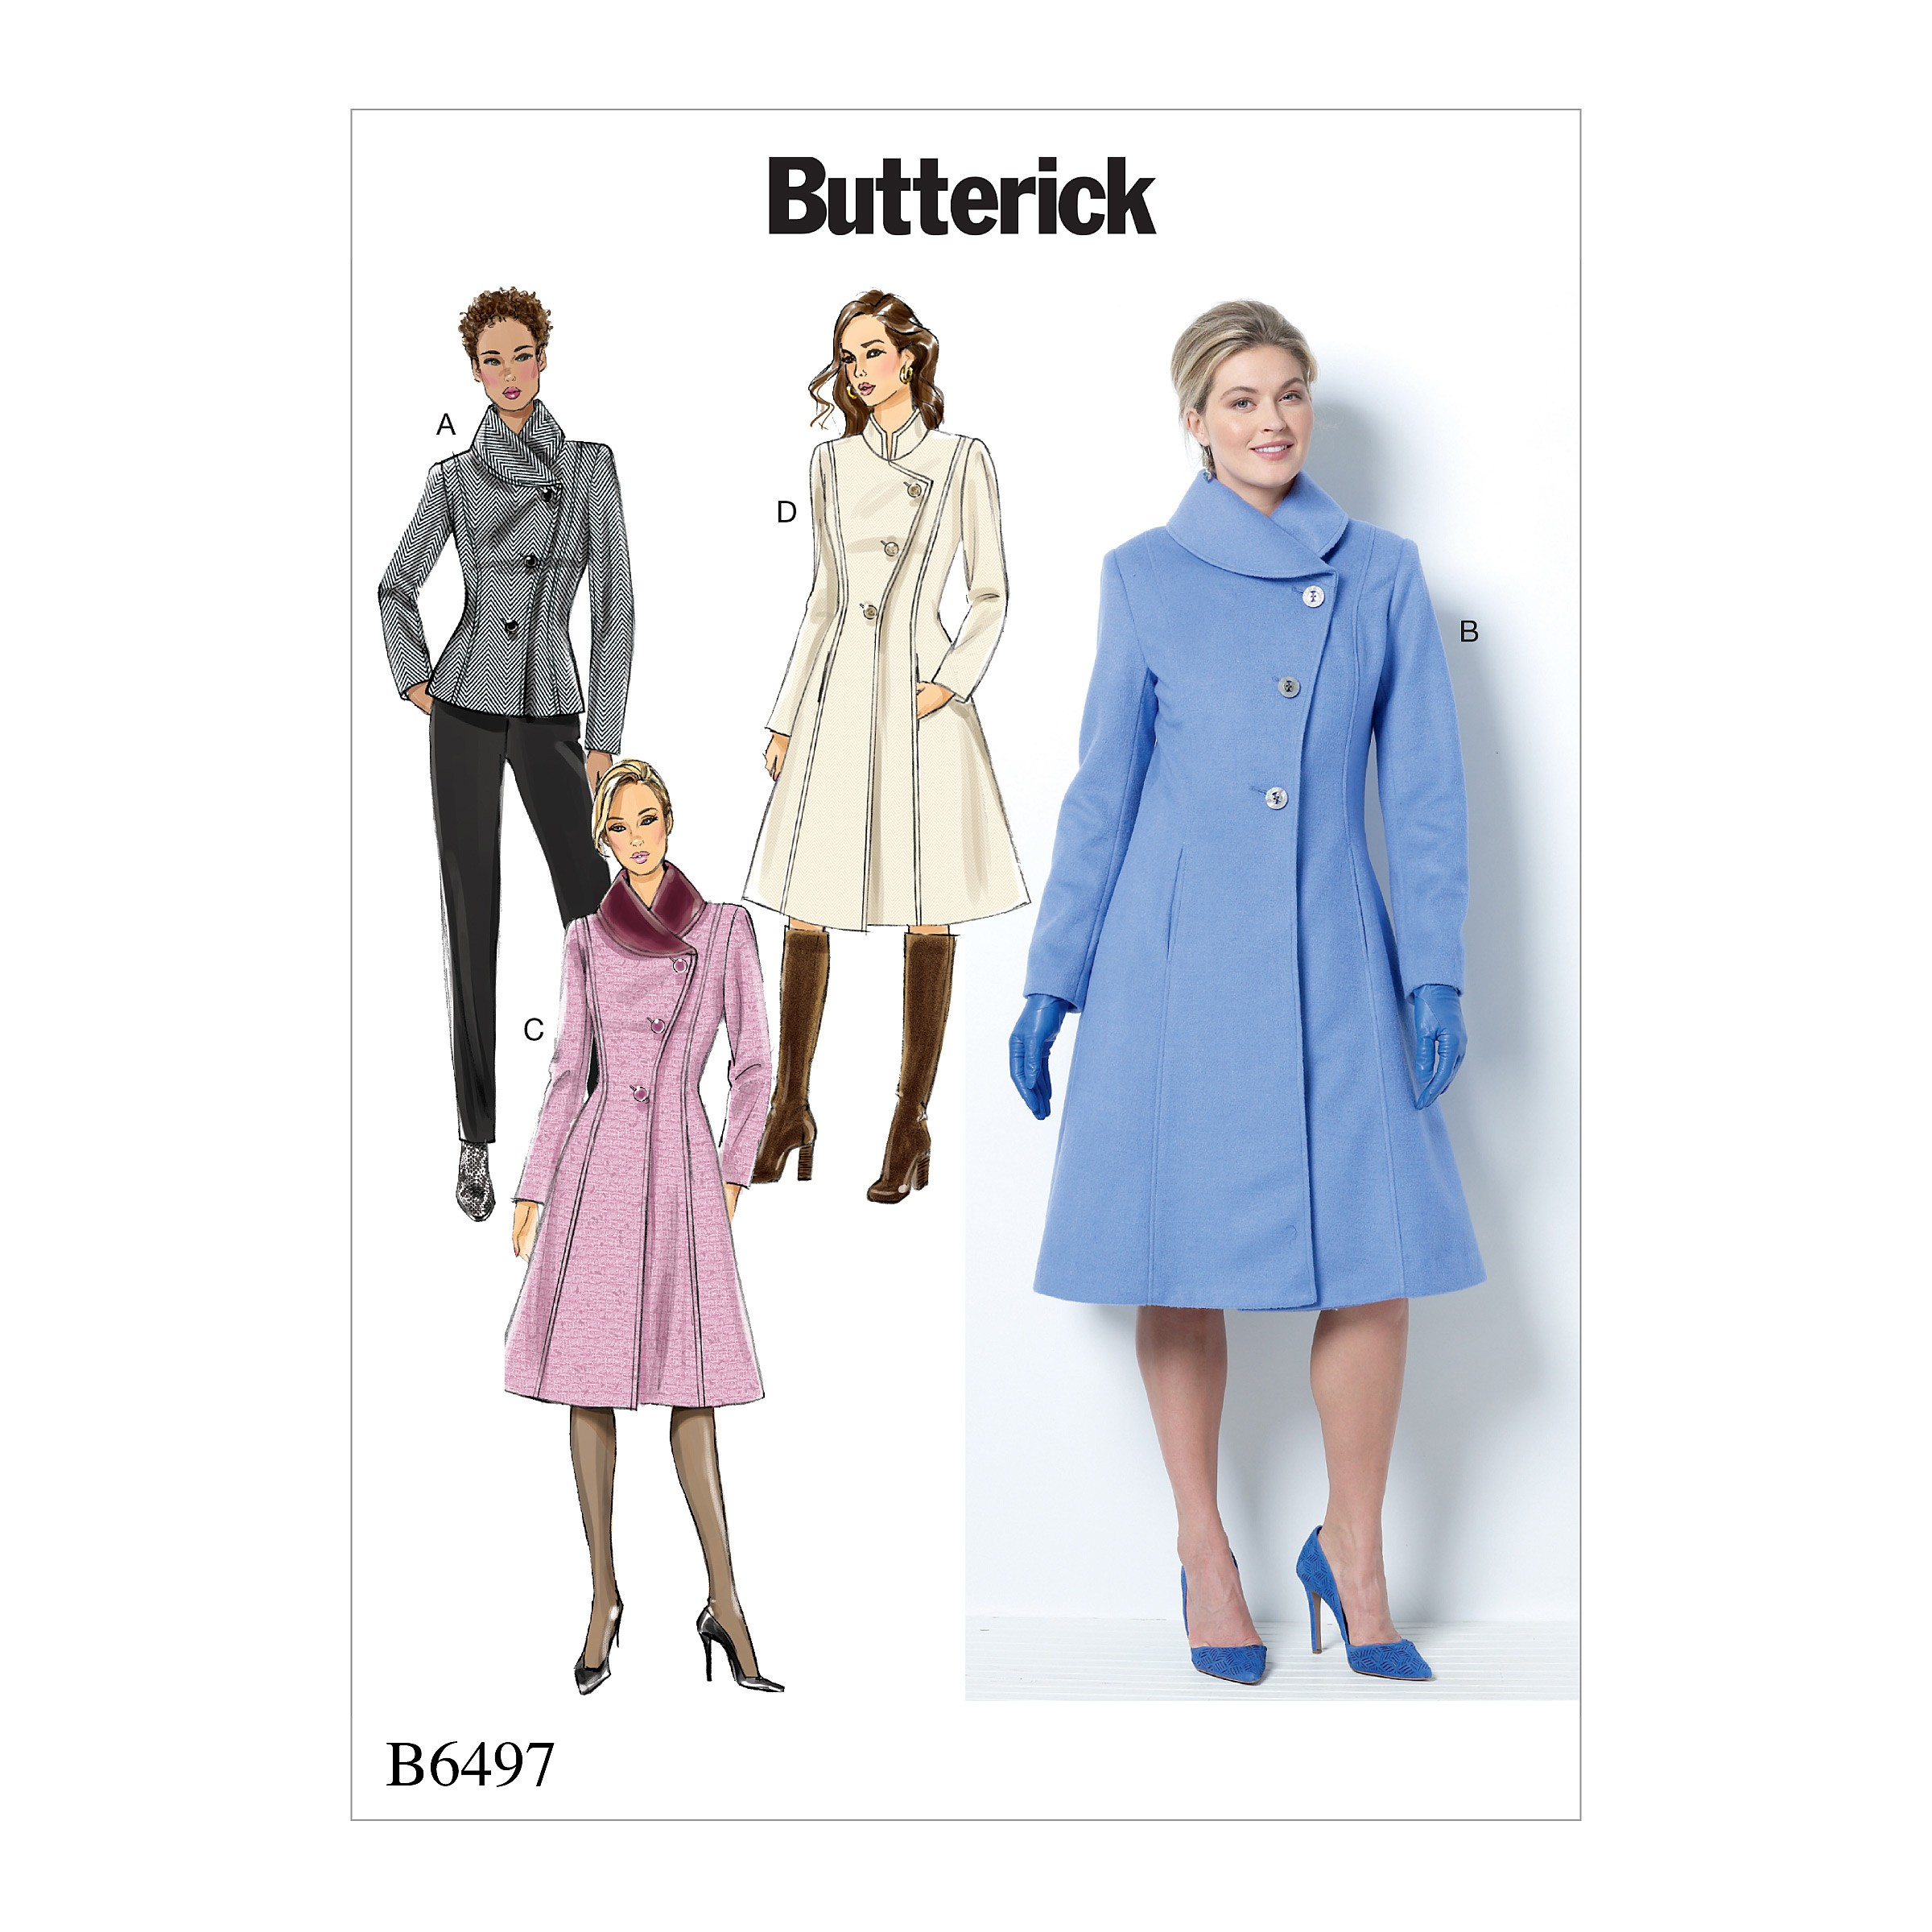 Butterick Sewing Pattern 6497 Misses' Petite Jacket Front & Collar Variations